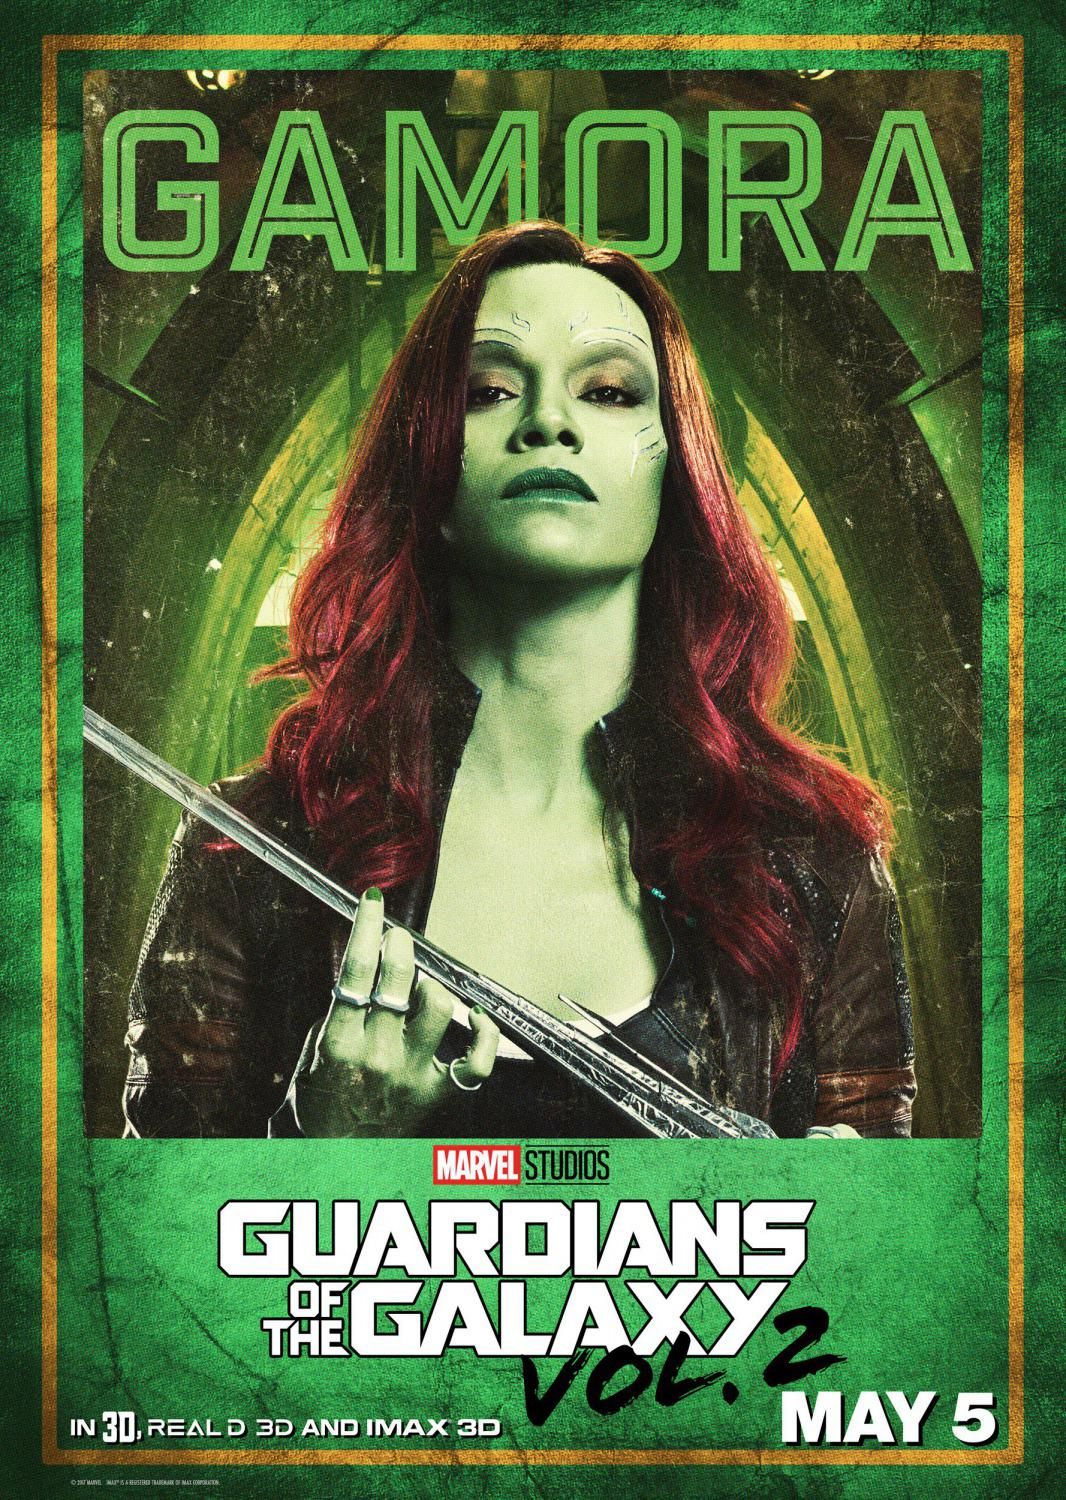 Guardians of the Galaxy vol two - Guardiani della Galassia 2 - Gamora